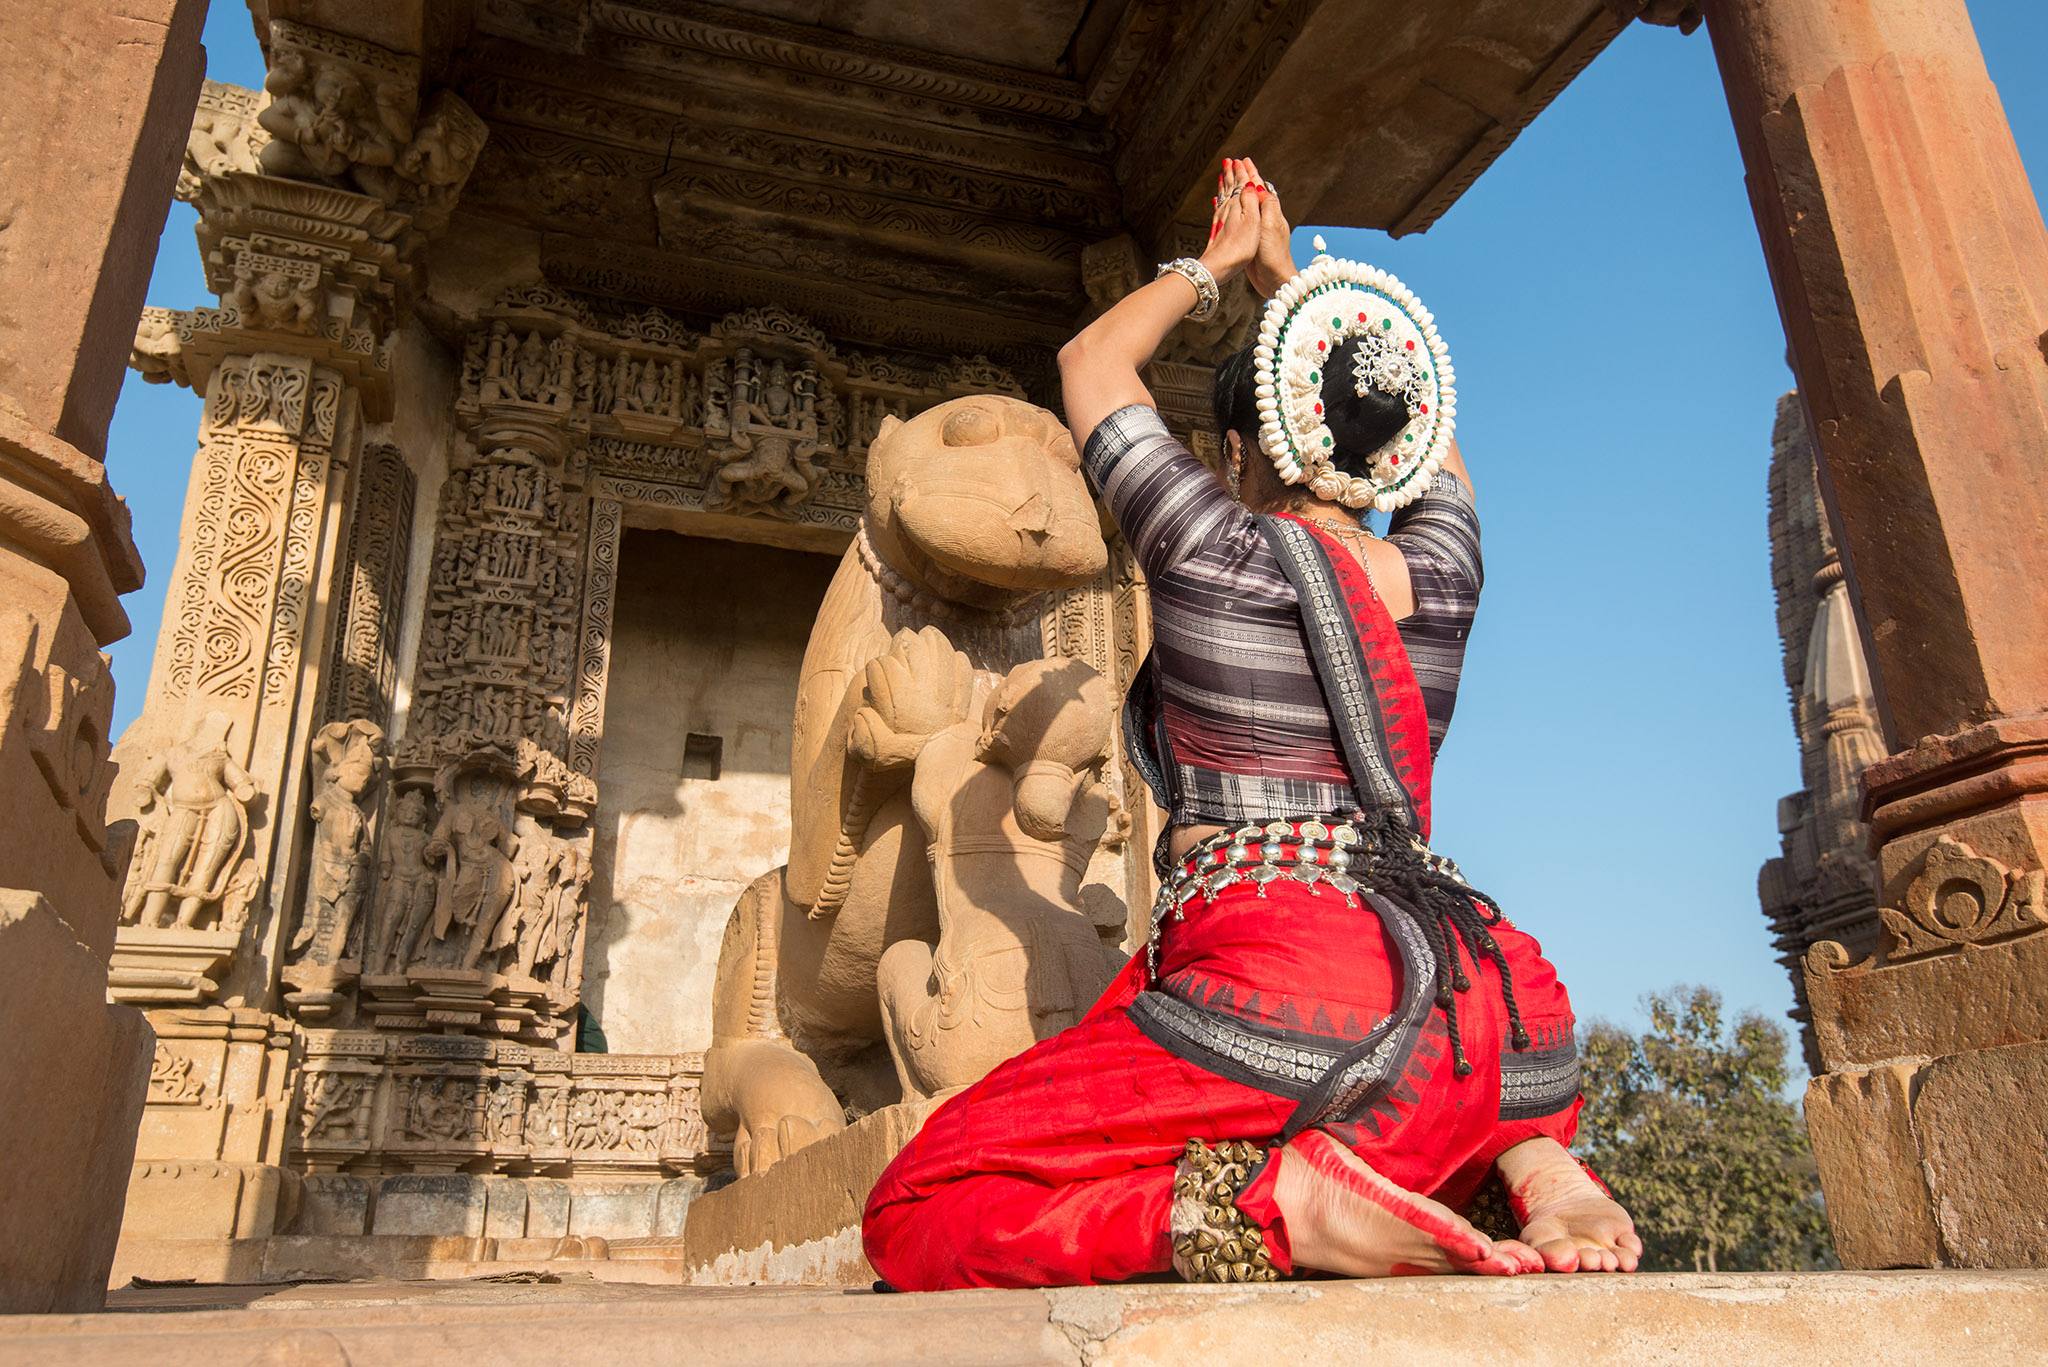 At the Khajuraho Dance Festival, colorful and brilliant Indian classical dance forms fight for attention. The dancer in the picture is a part of the Kaishiki dance troupe.